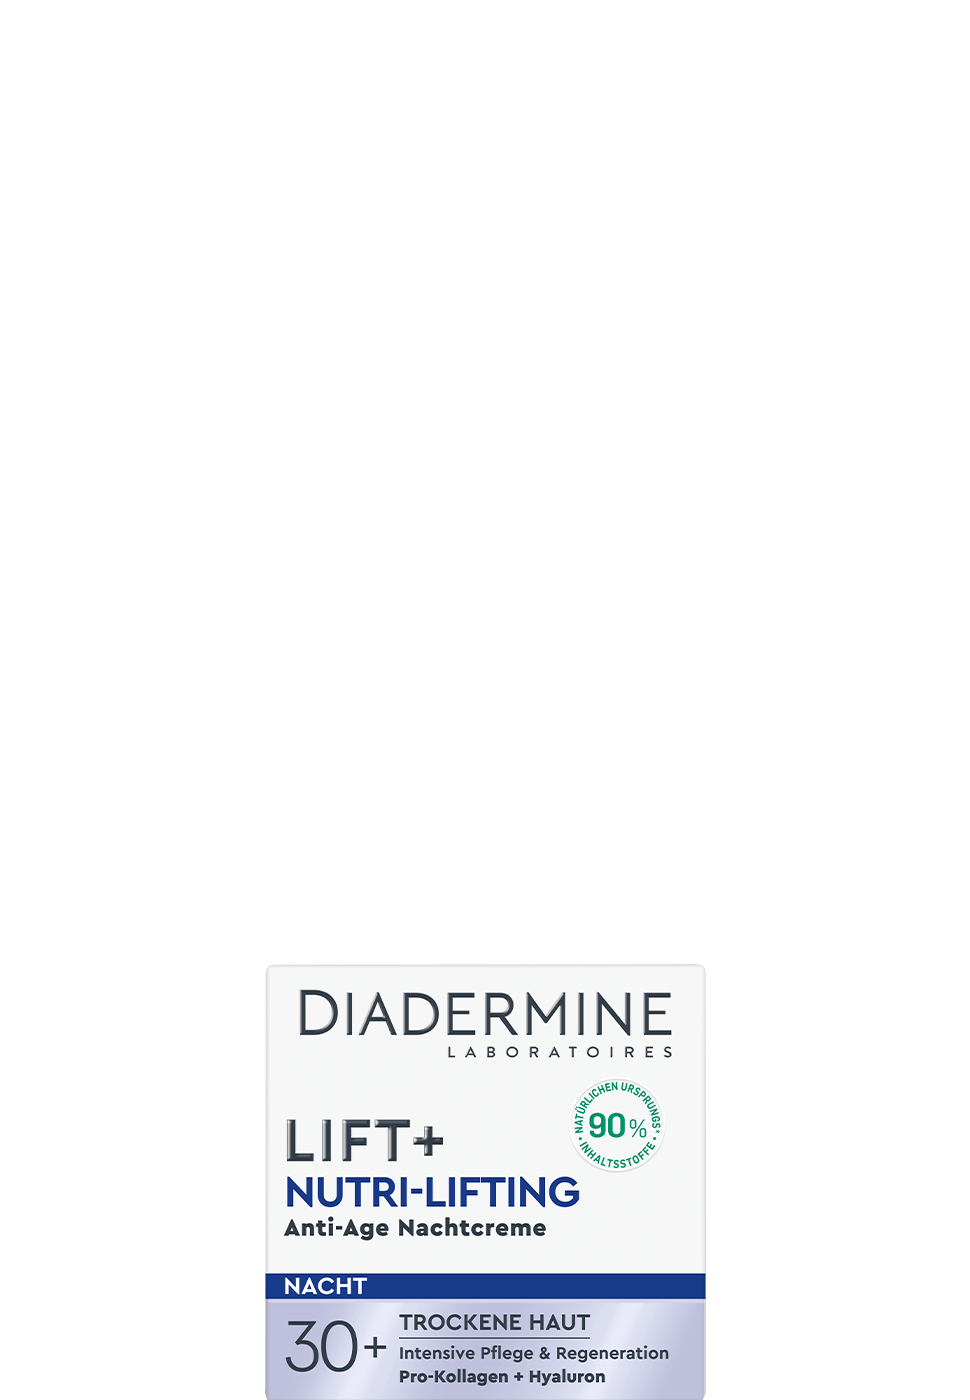 diadermine_de_lift_plus_nutri_lifting_nachtcreme_970x1400